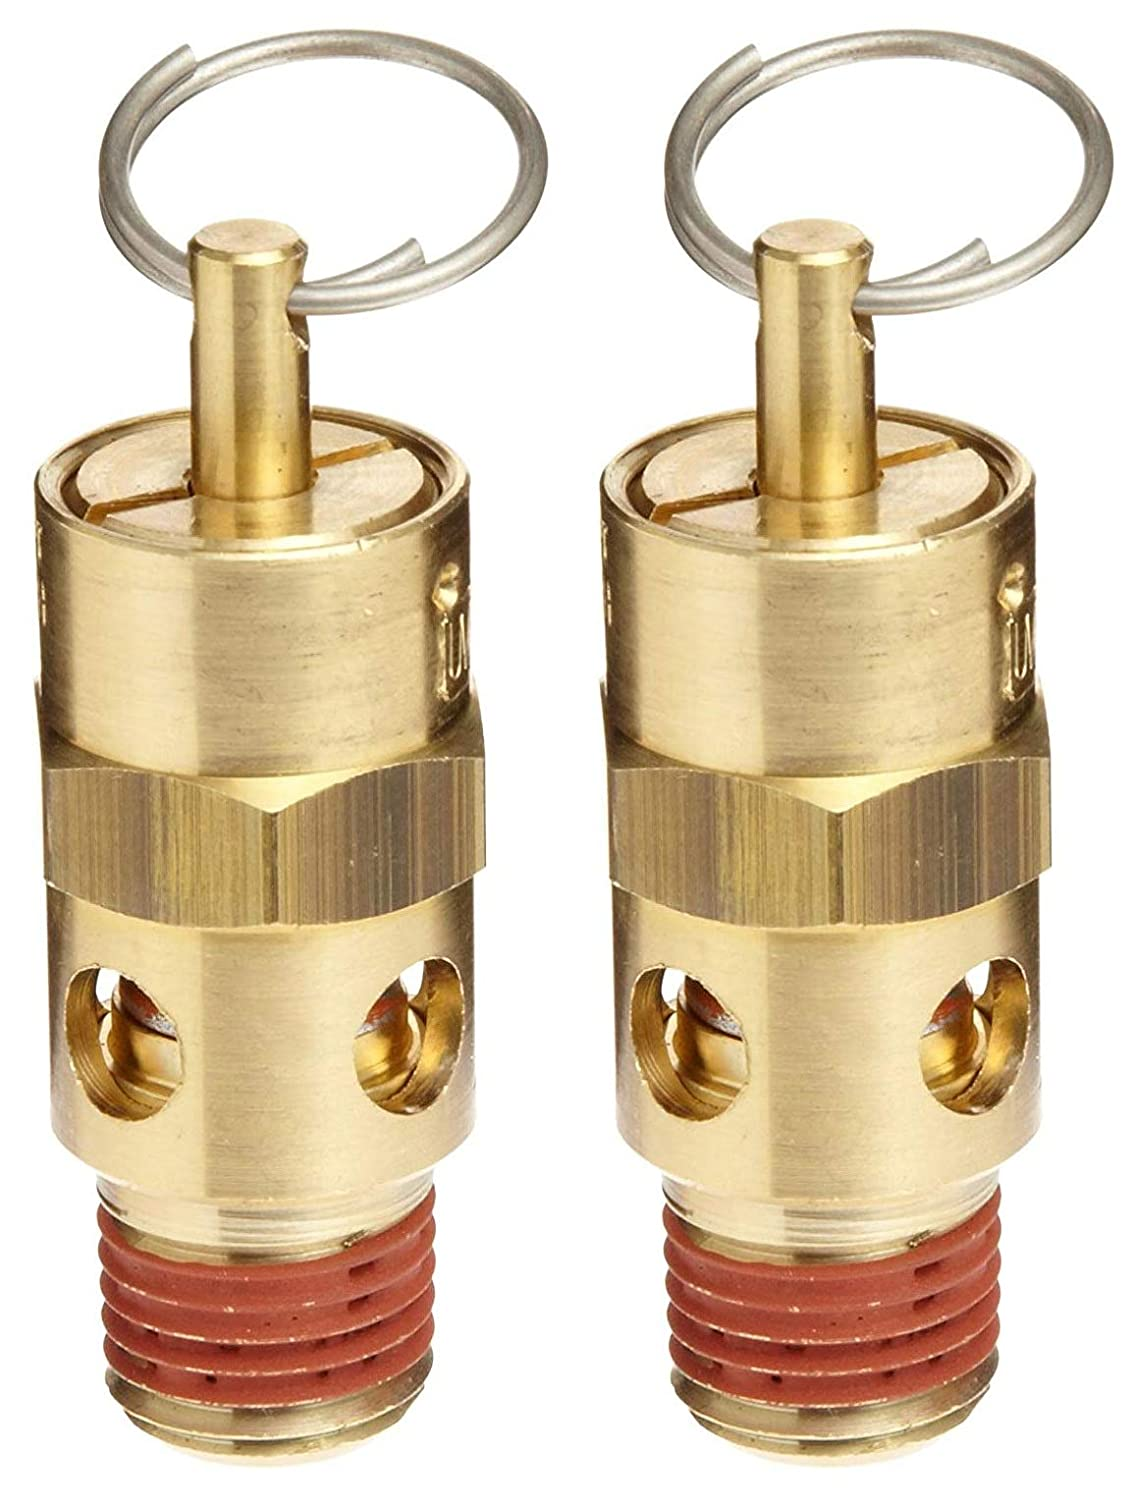 Control Devices ST Series Brass ASME Safety Valve, 200 psi Set Pressure, 1/4